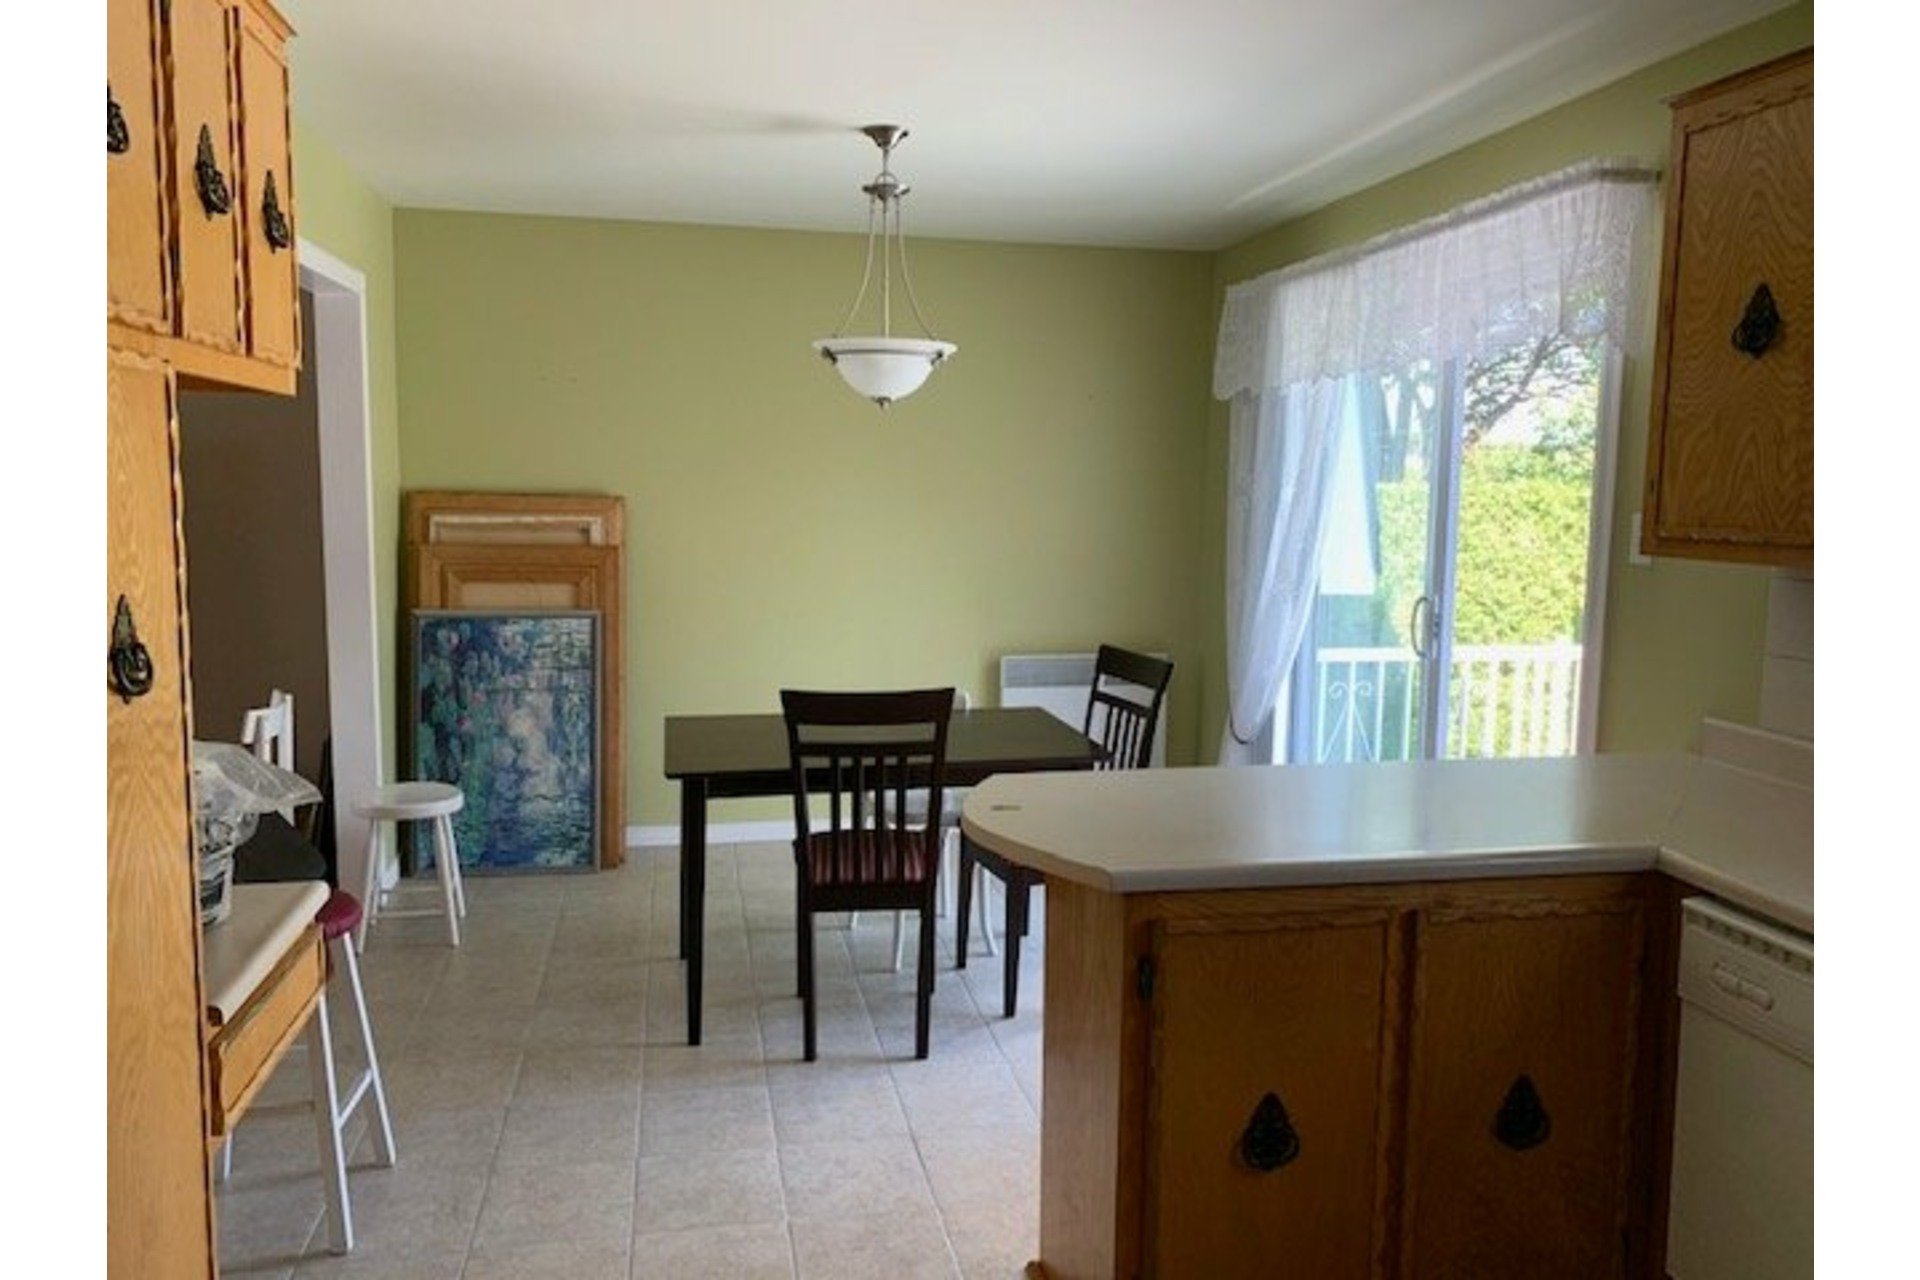 image 10 - House For sale Repentigny Repentigny  - 9 rooms